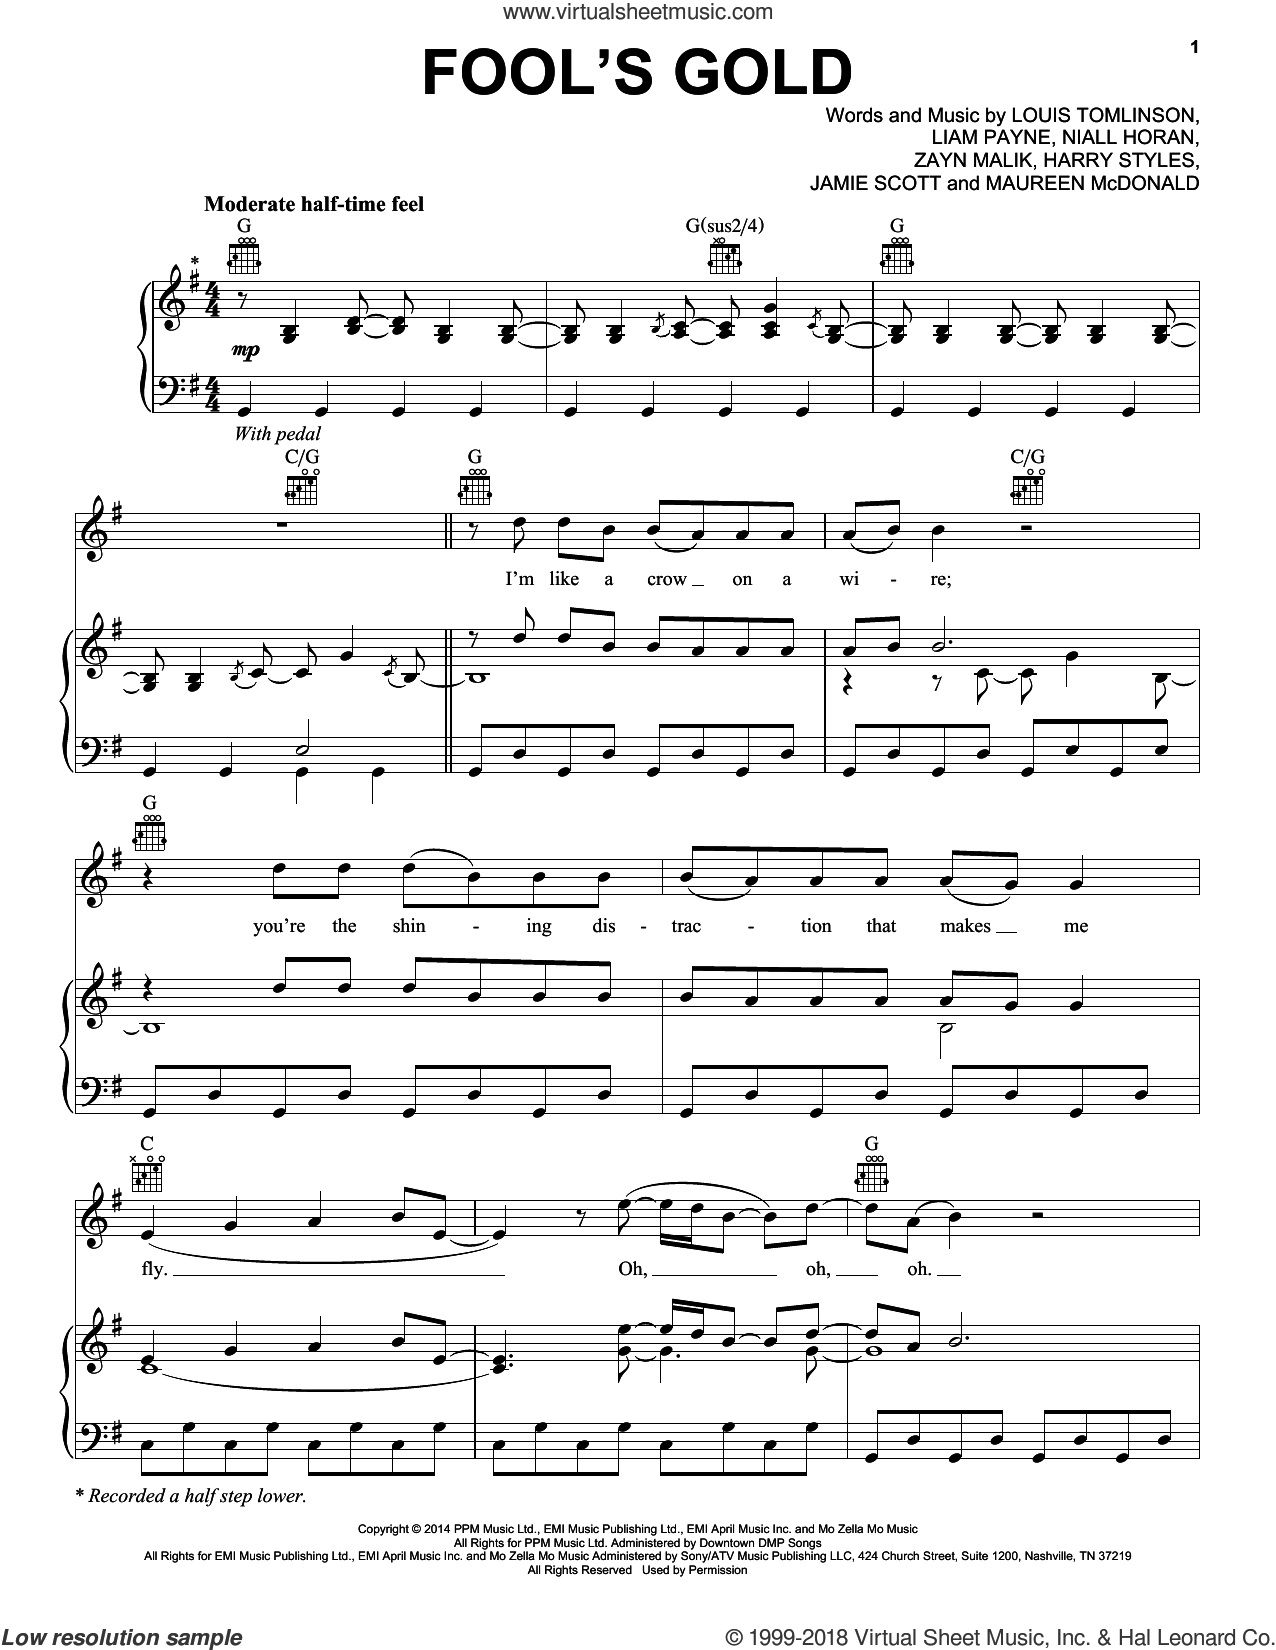 Fool's Gold sheet music for voice, piano or guitar by Zayn Malik